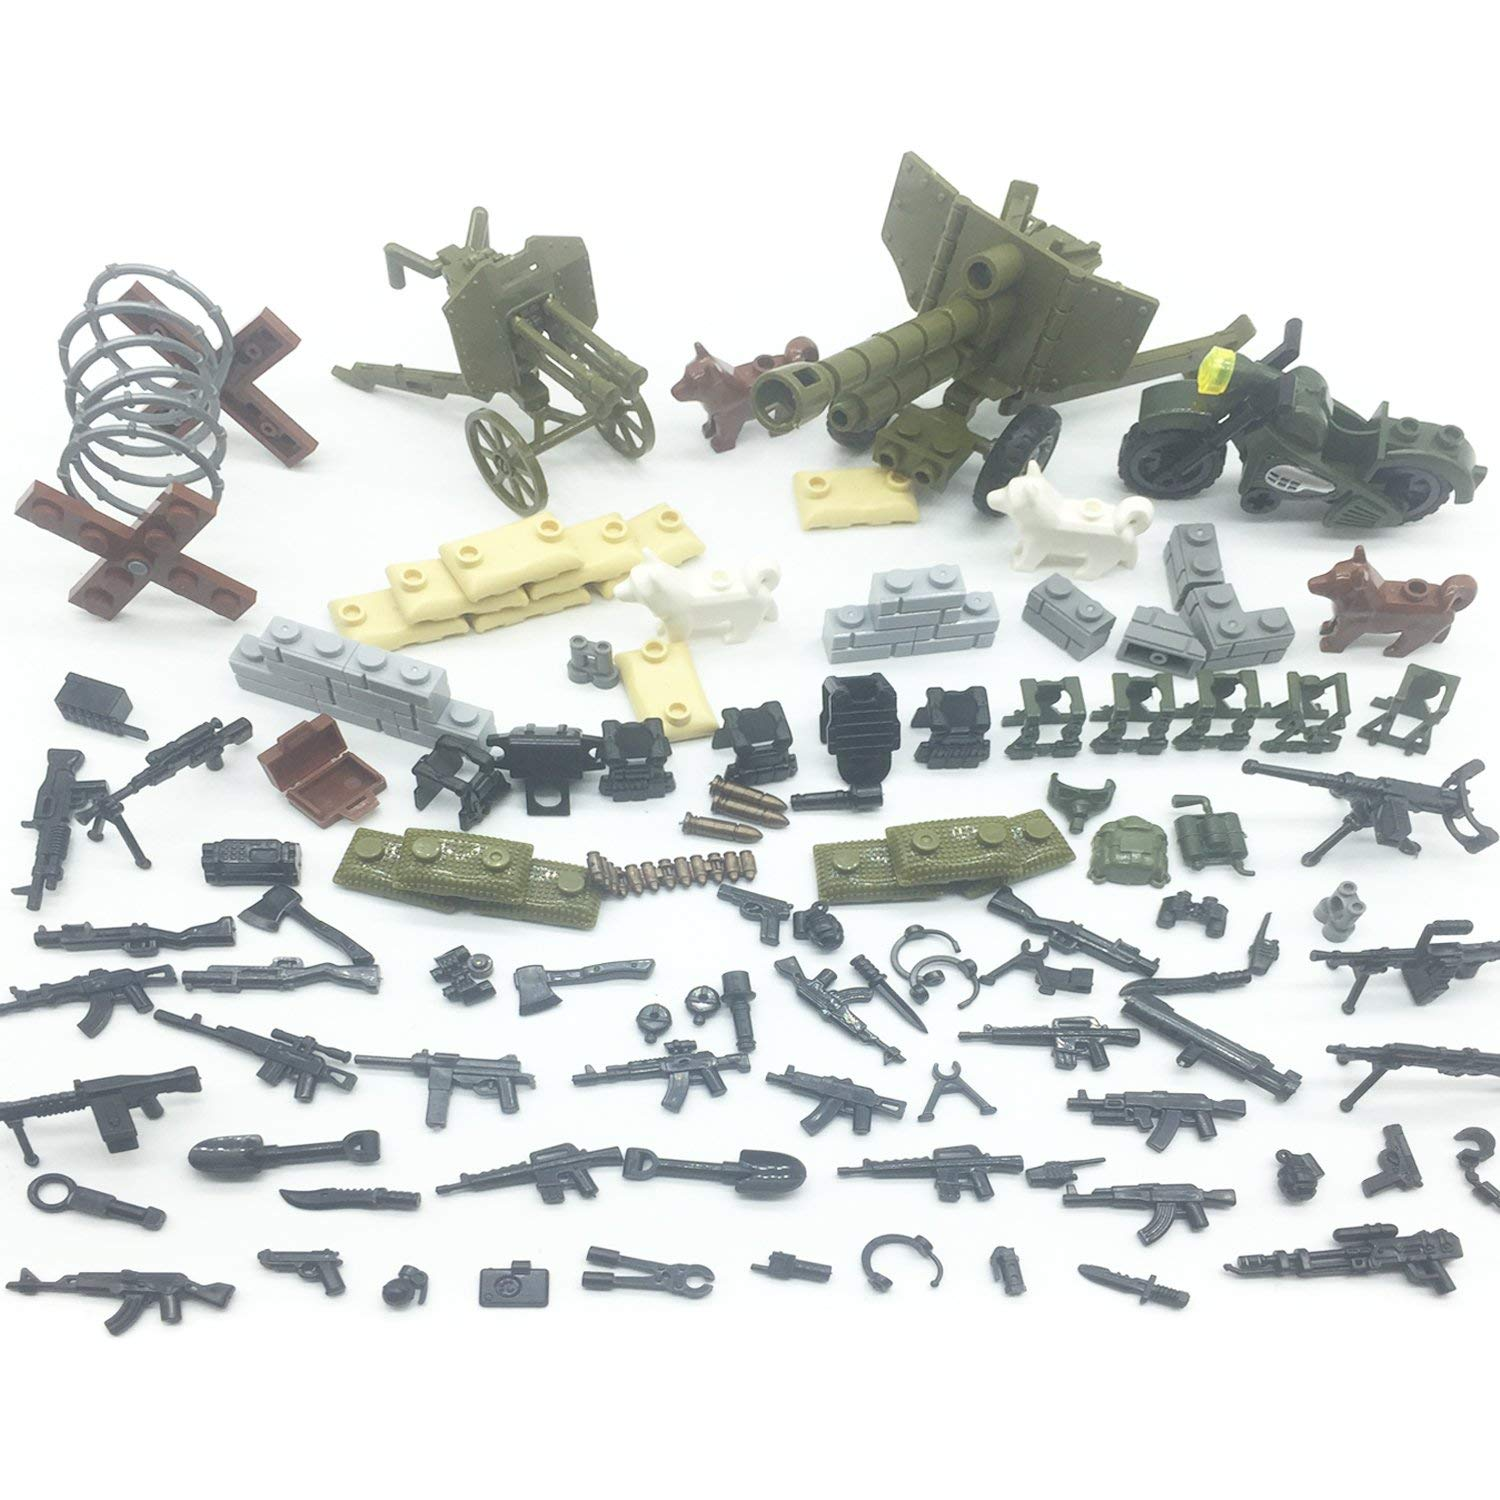 Koolfigure Custom Military Army Weapons & Accessories Set Compatible Major Brands, Building Blocks Toy